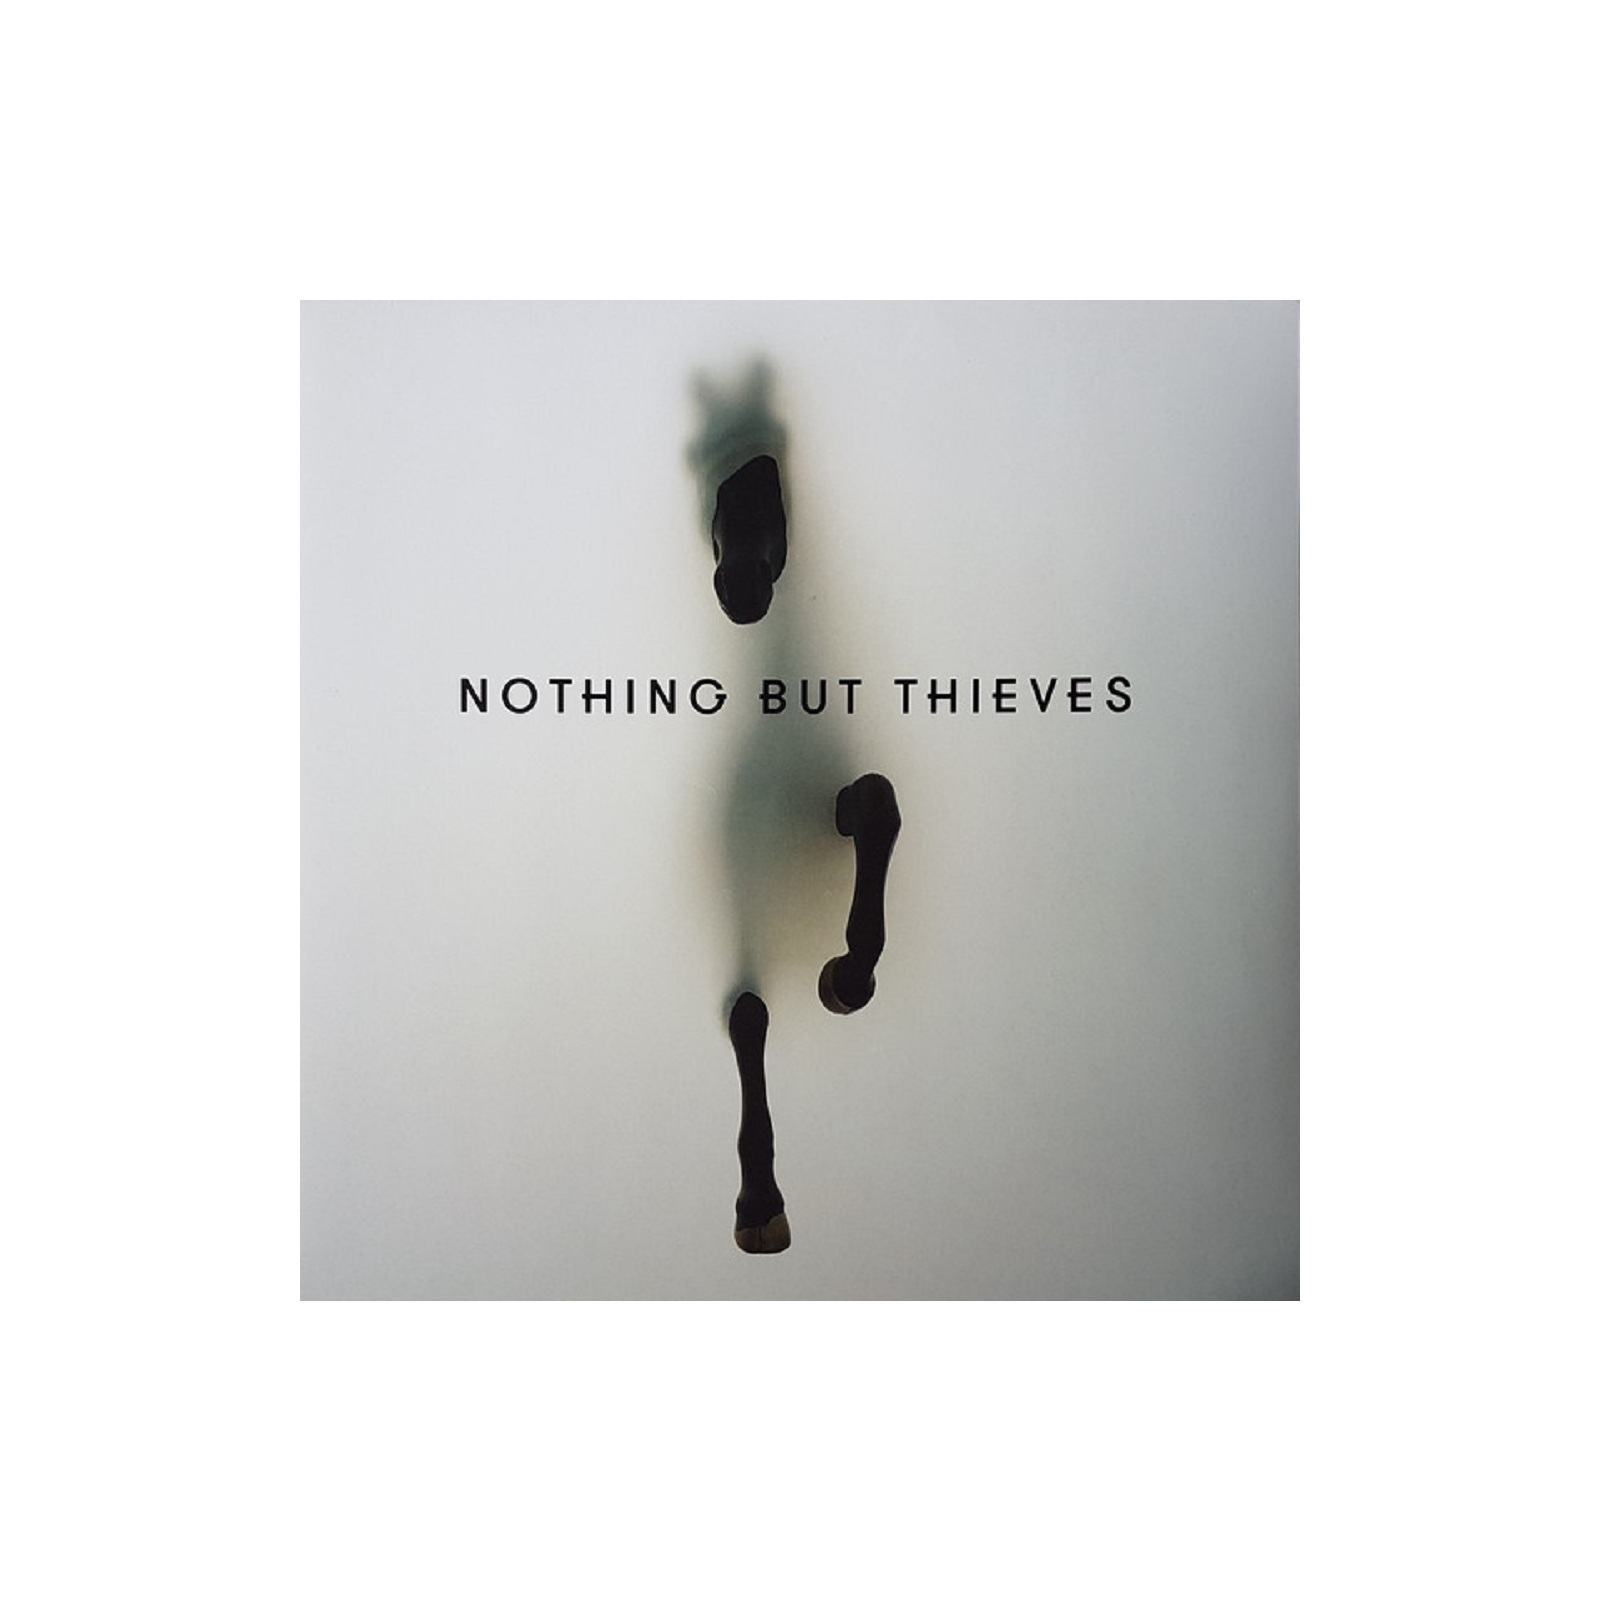 NOTHING BUT THIEVES (WHITE VINYL LP) - NOTHING BUT THIEVES